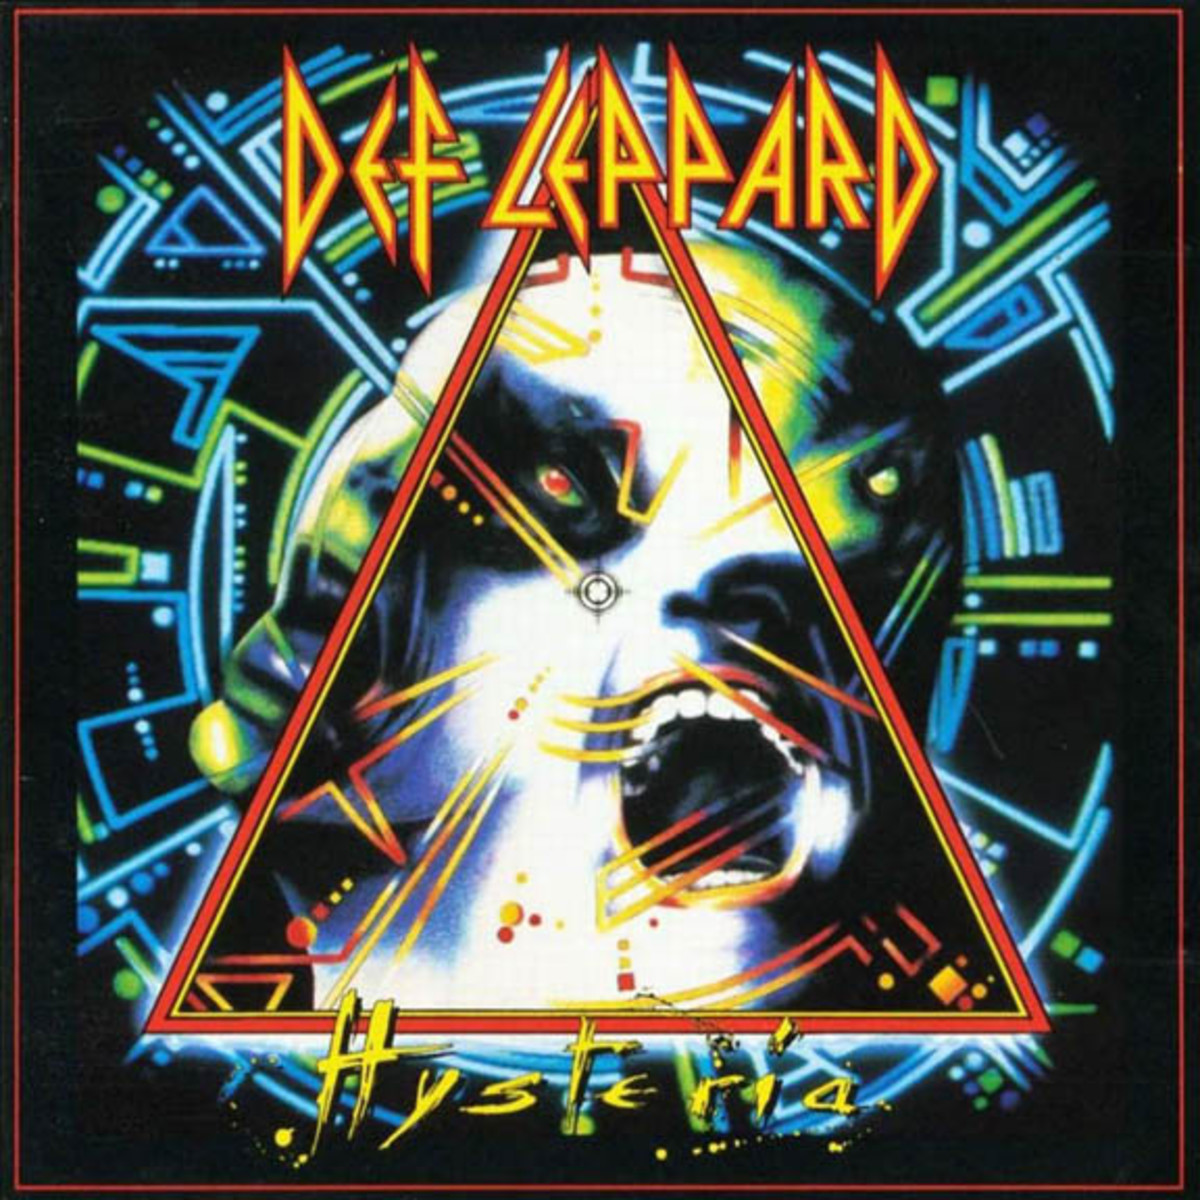 Def Leppard Hysterial album cover